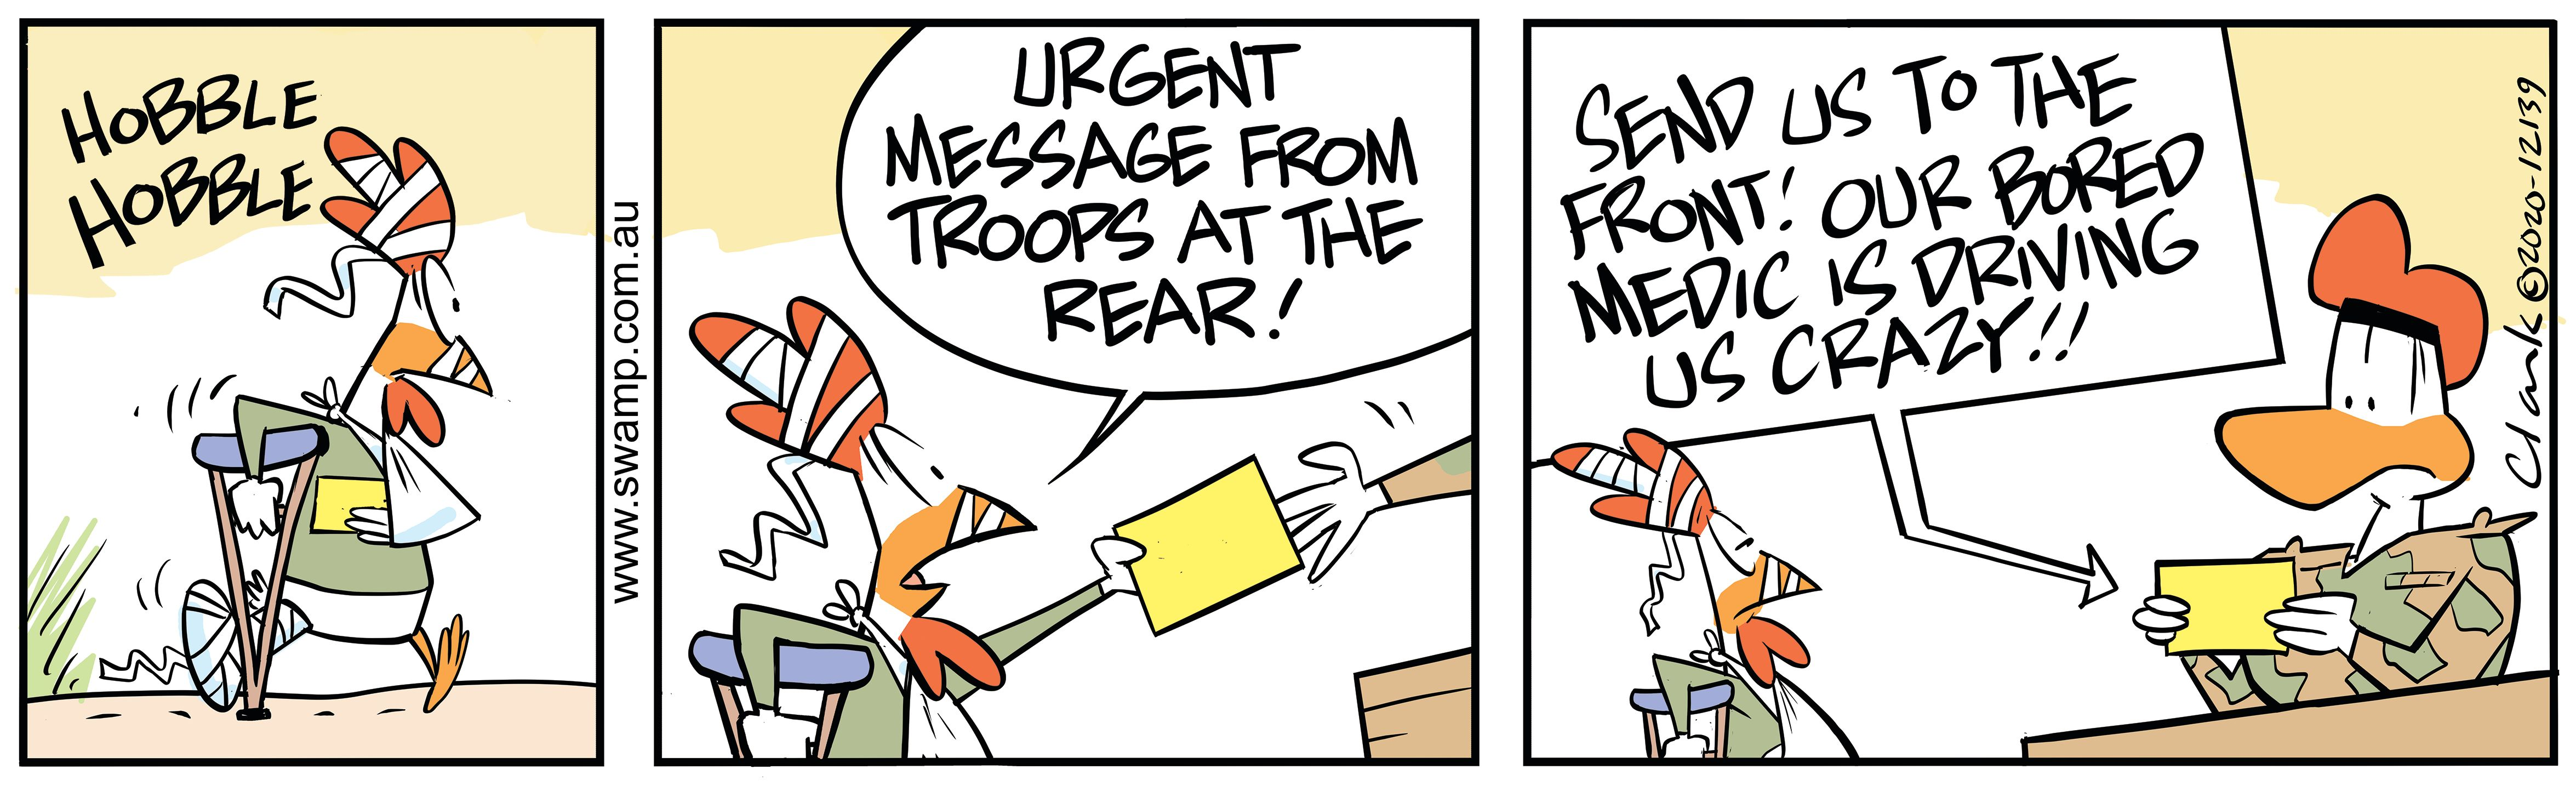 Urgent Message From Troops